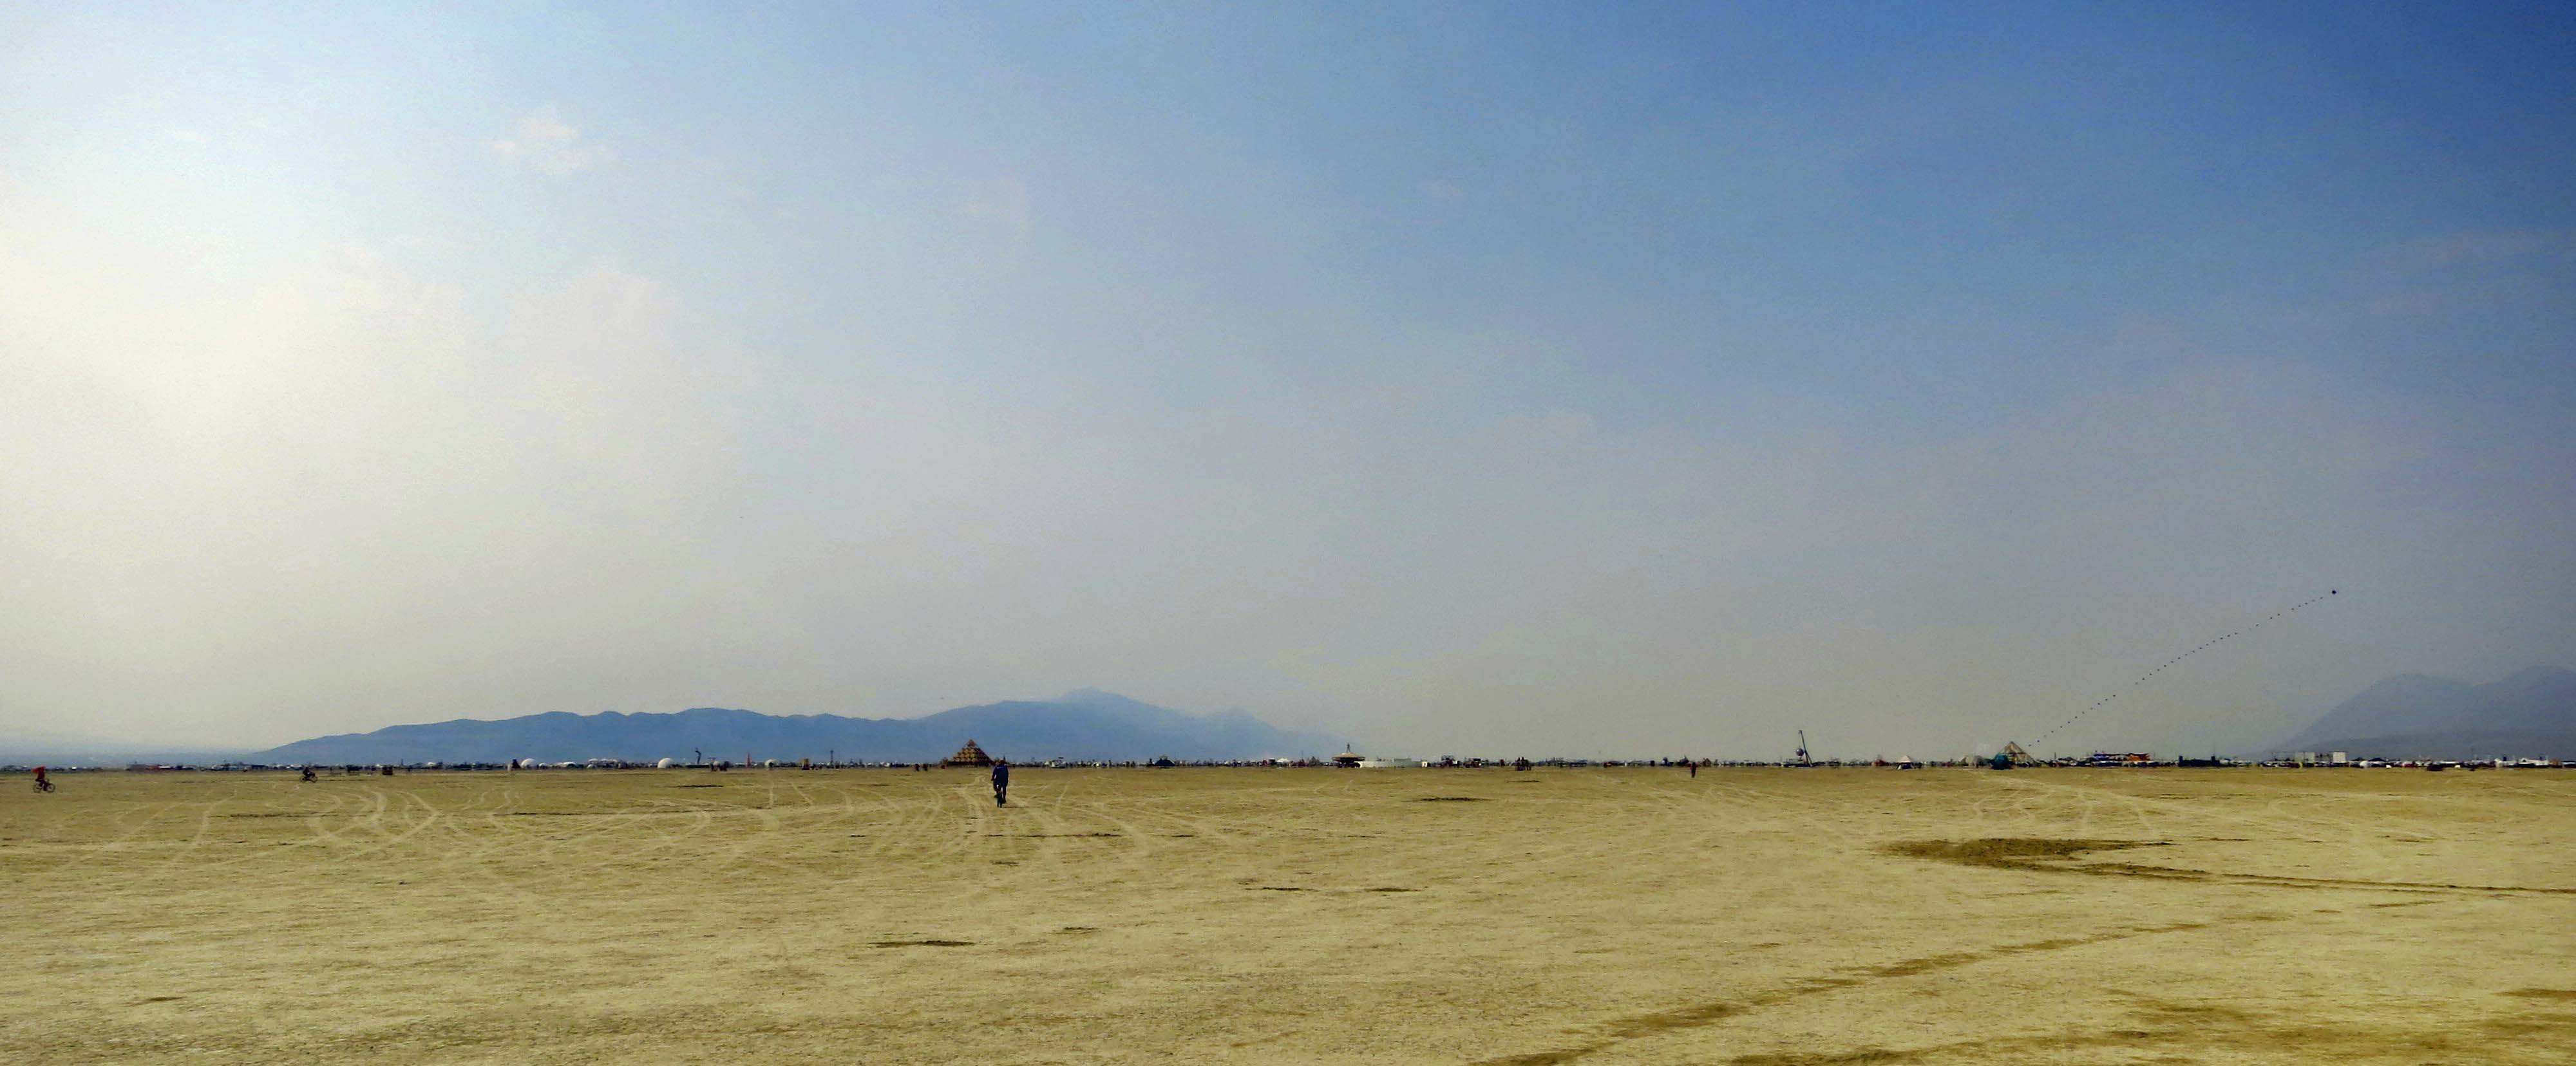 The Playa at Burning Man is made up of a lakebed that was once buried under Lake Lahotan. Black Rock City stretches across the horizon.